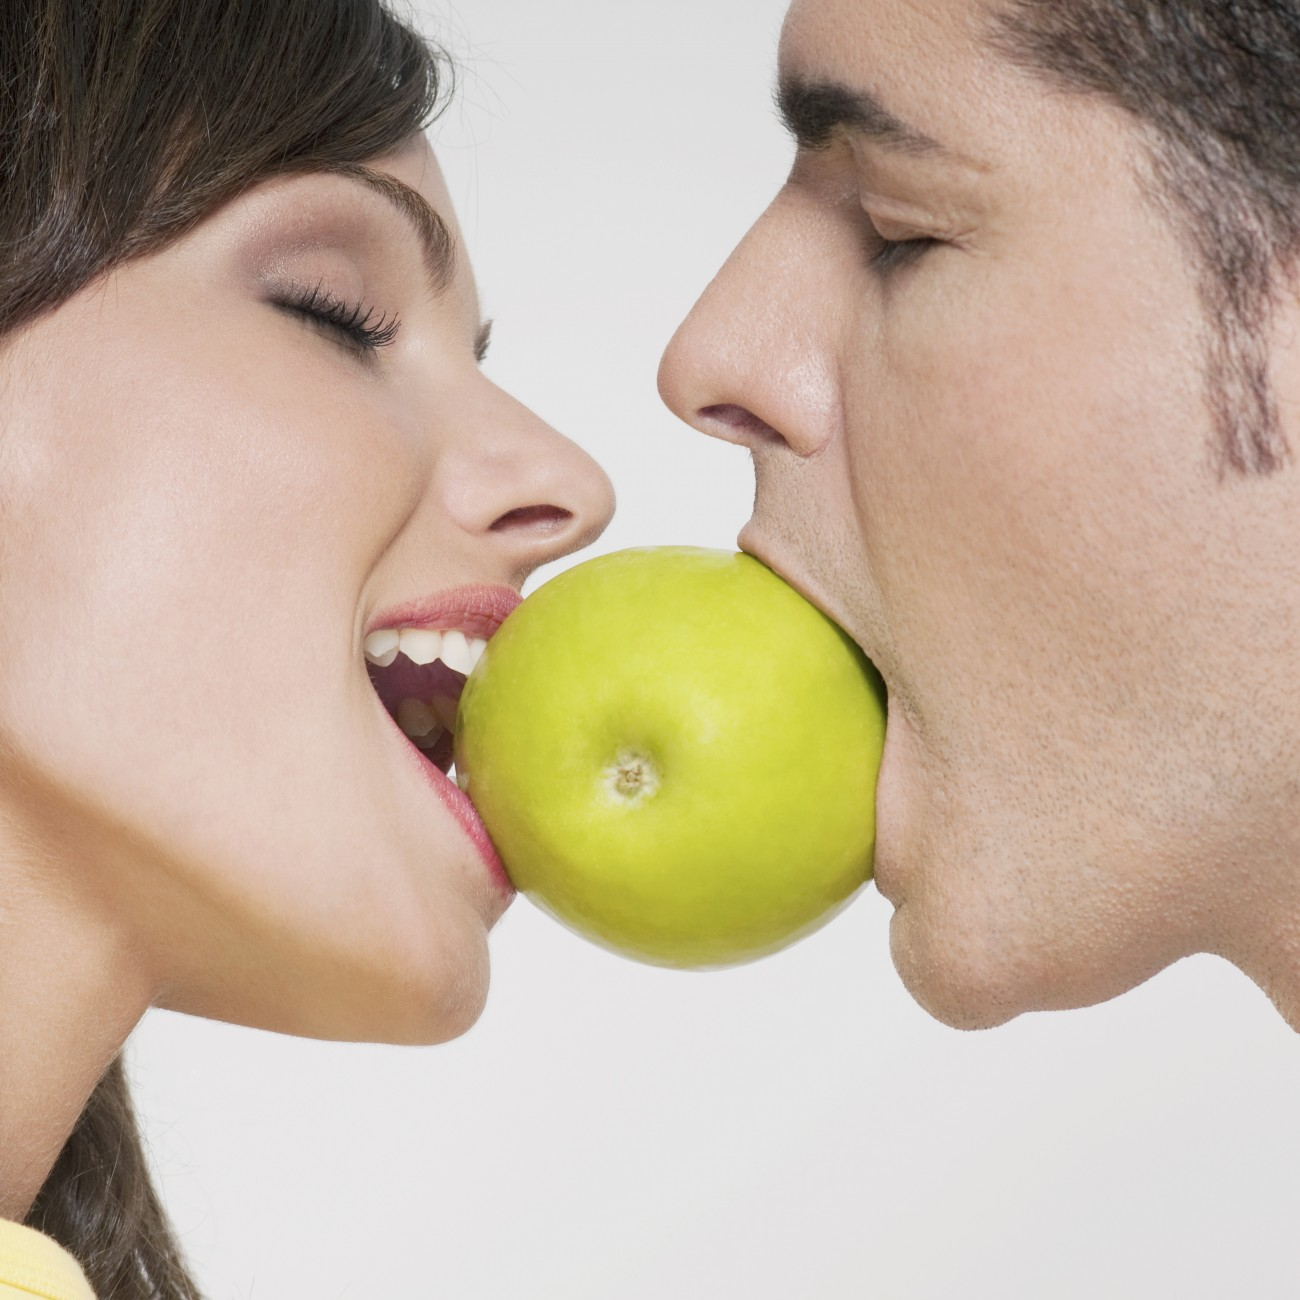 Apples and oranges comparison on sexuality